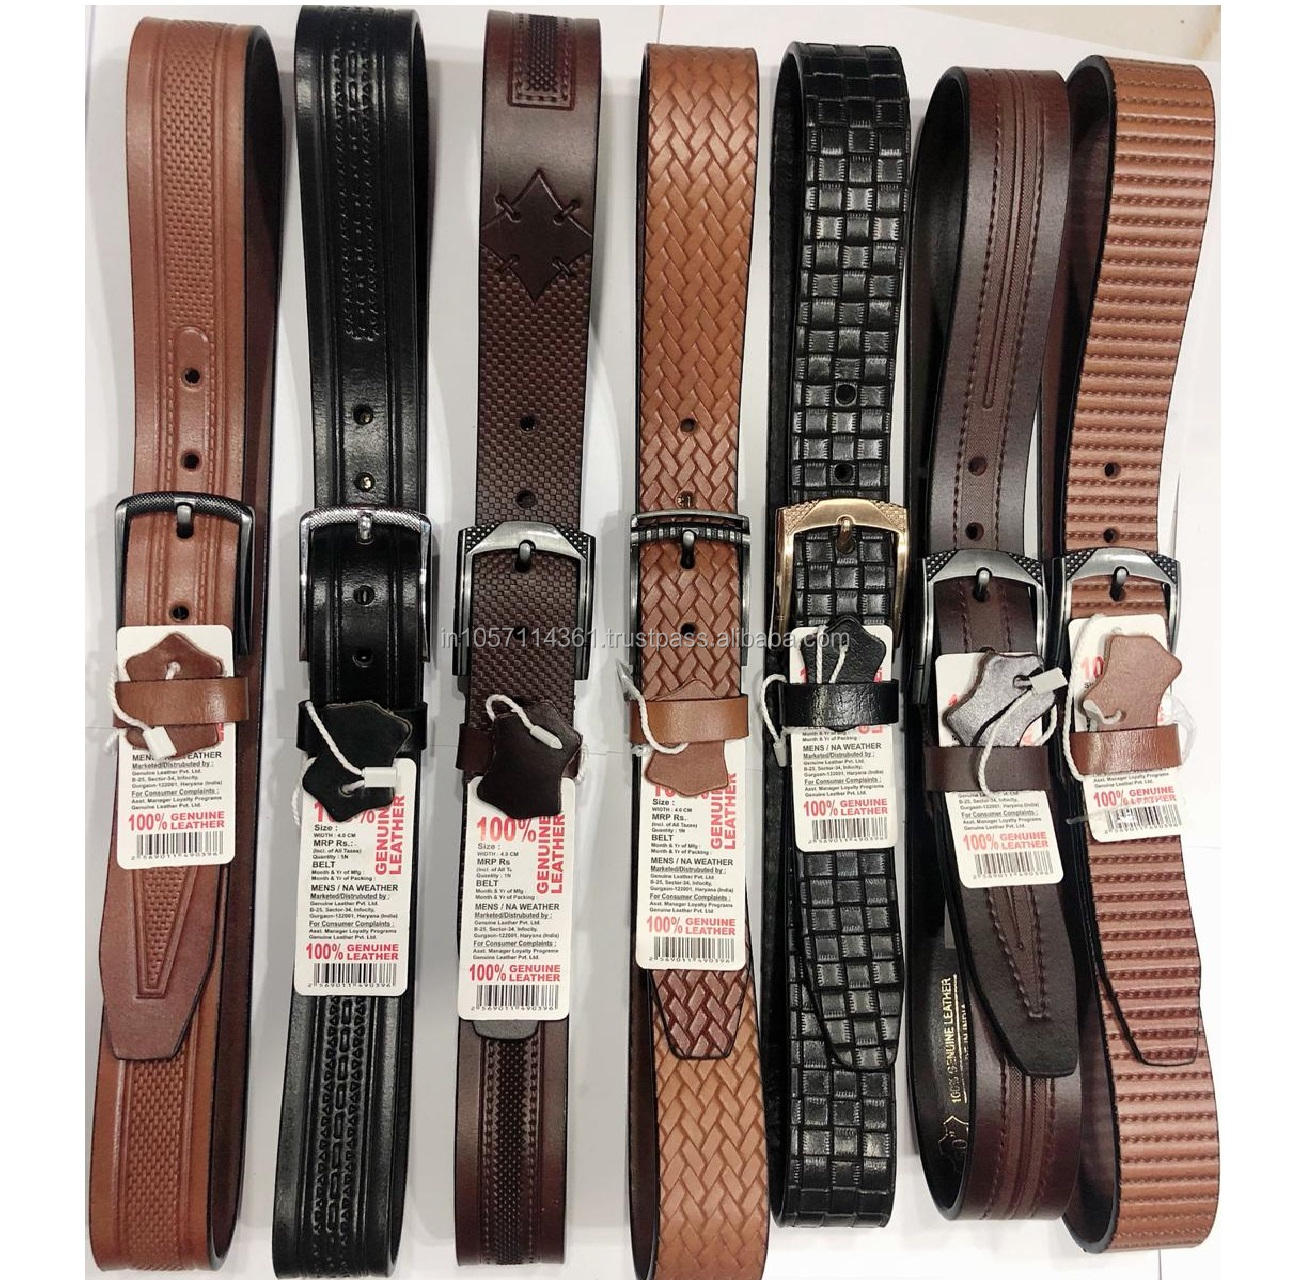 Limited Stock Designer Braided Leather Belts\Patterned Leather Belts